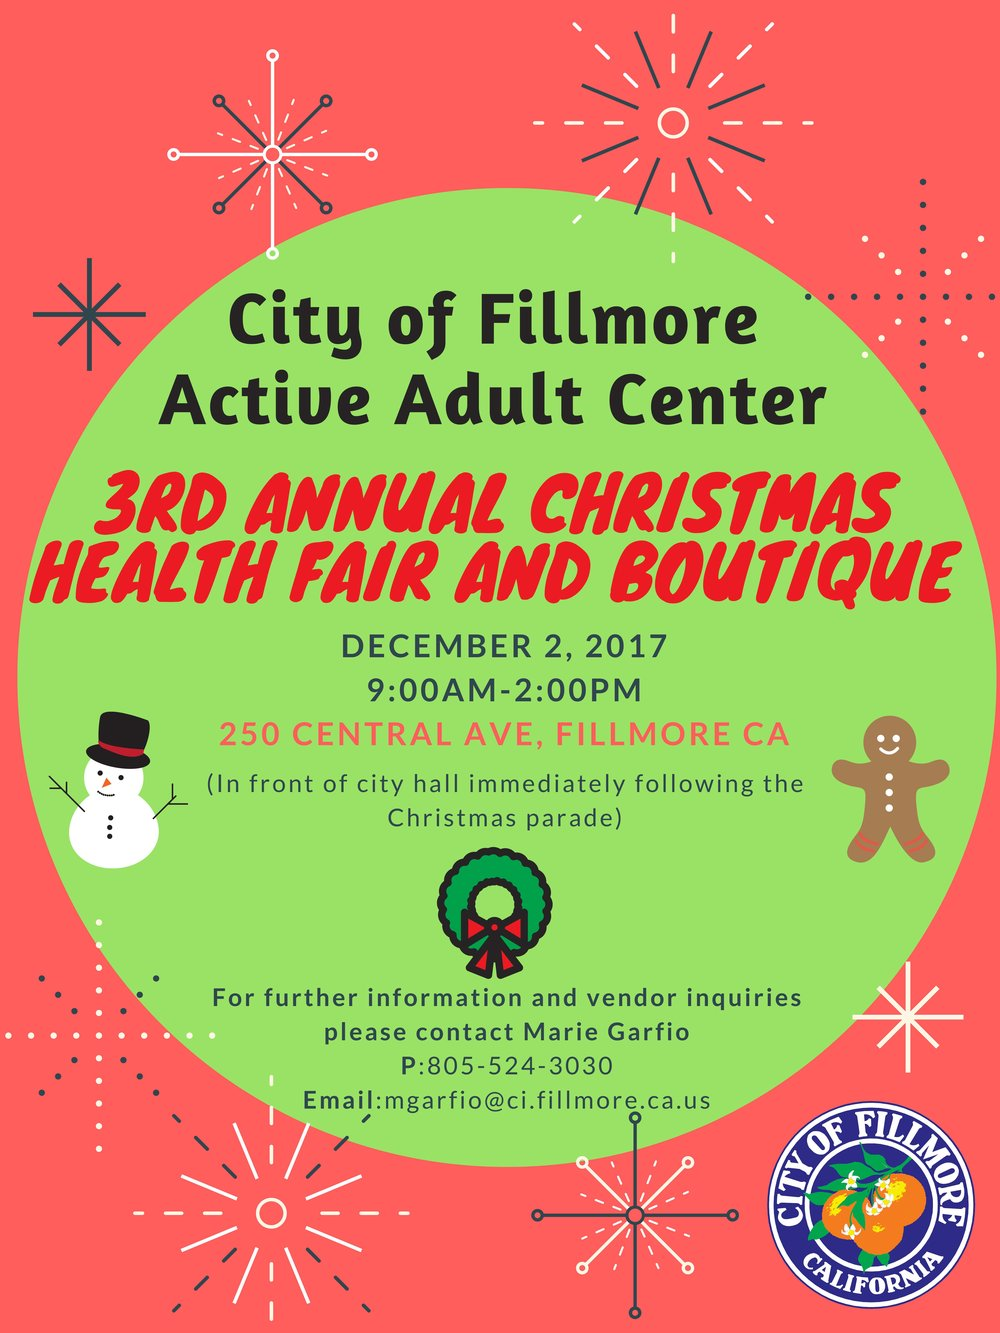 Christmas Health Fair and Boutique Dec. 2, 2017.jpg